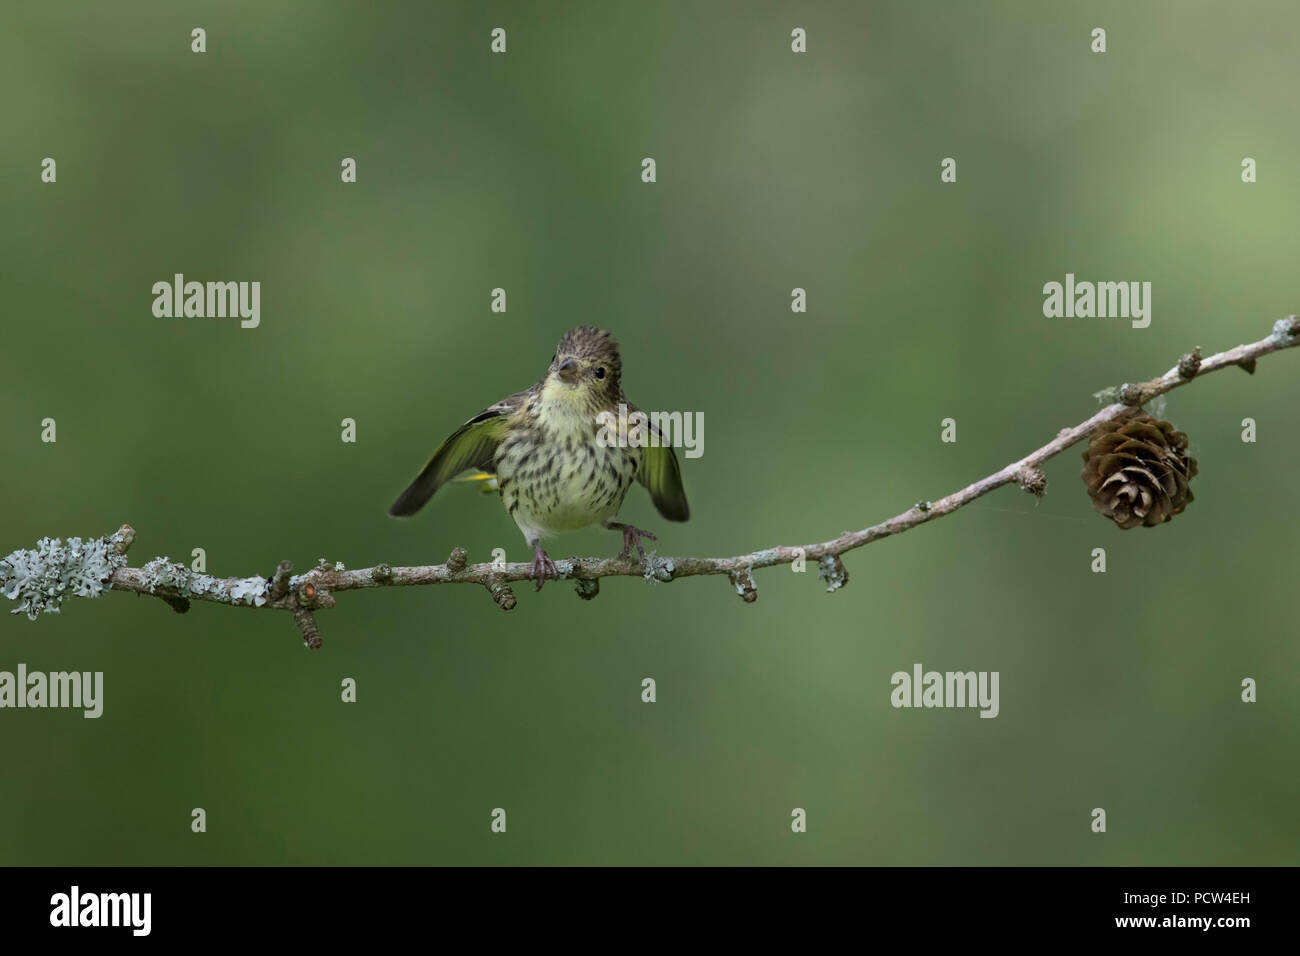 Tiny little siskin bird flapping its wings to be fed - Stock Image